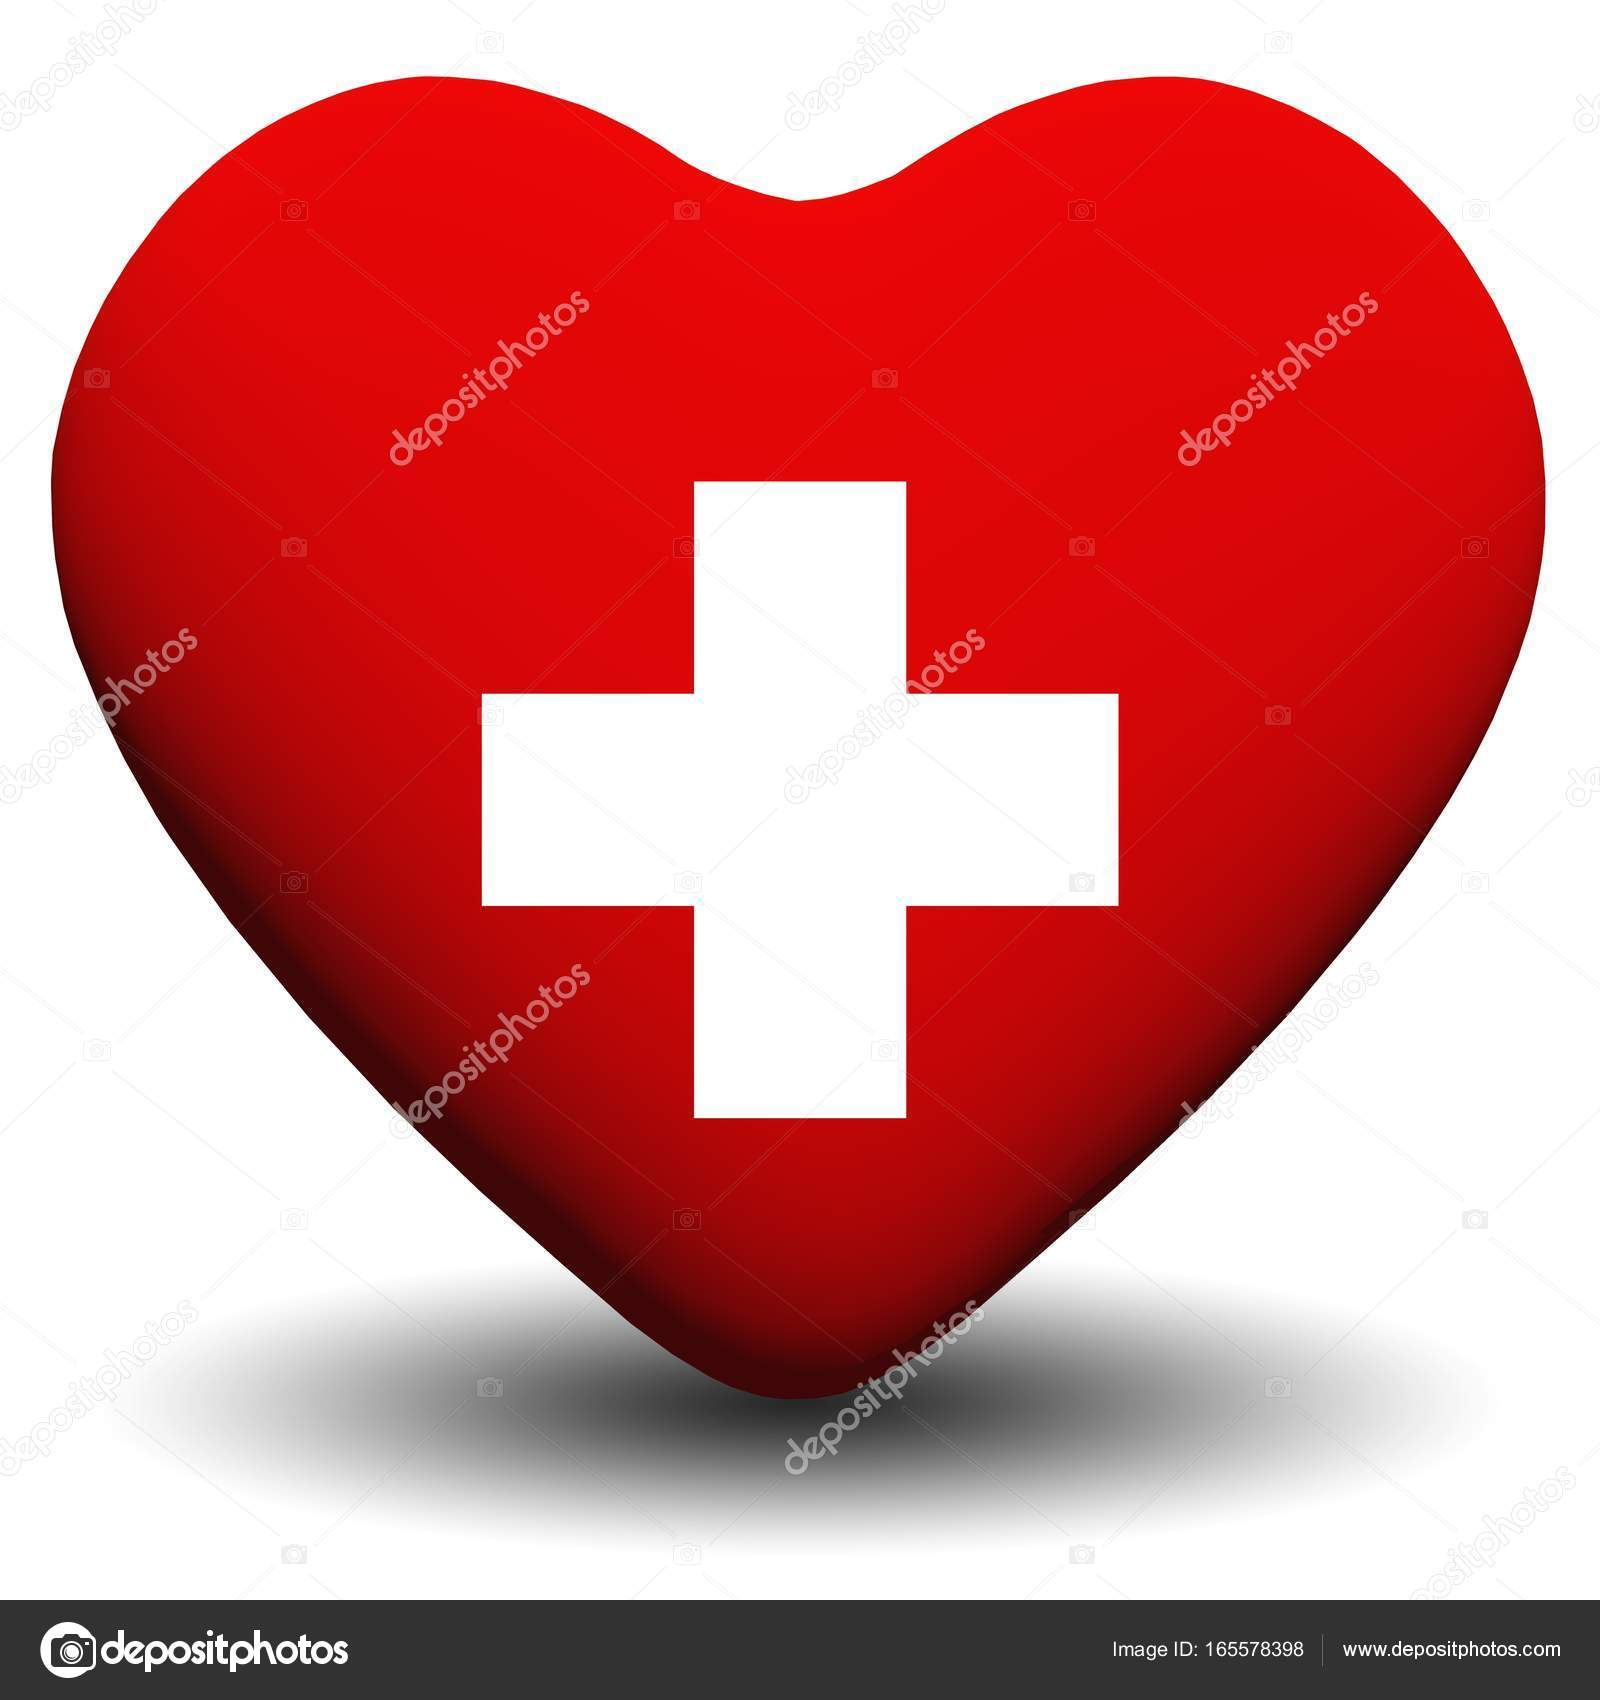 High Resolution 3D Heart With A Cross Sign Or Symbol Isolated On White Background Ideal For Medical Sanitary Medicine Designs